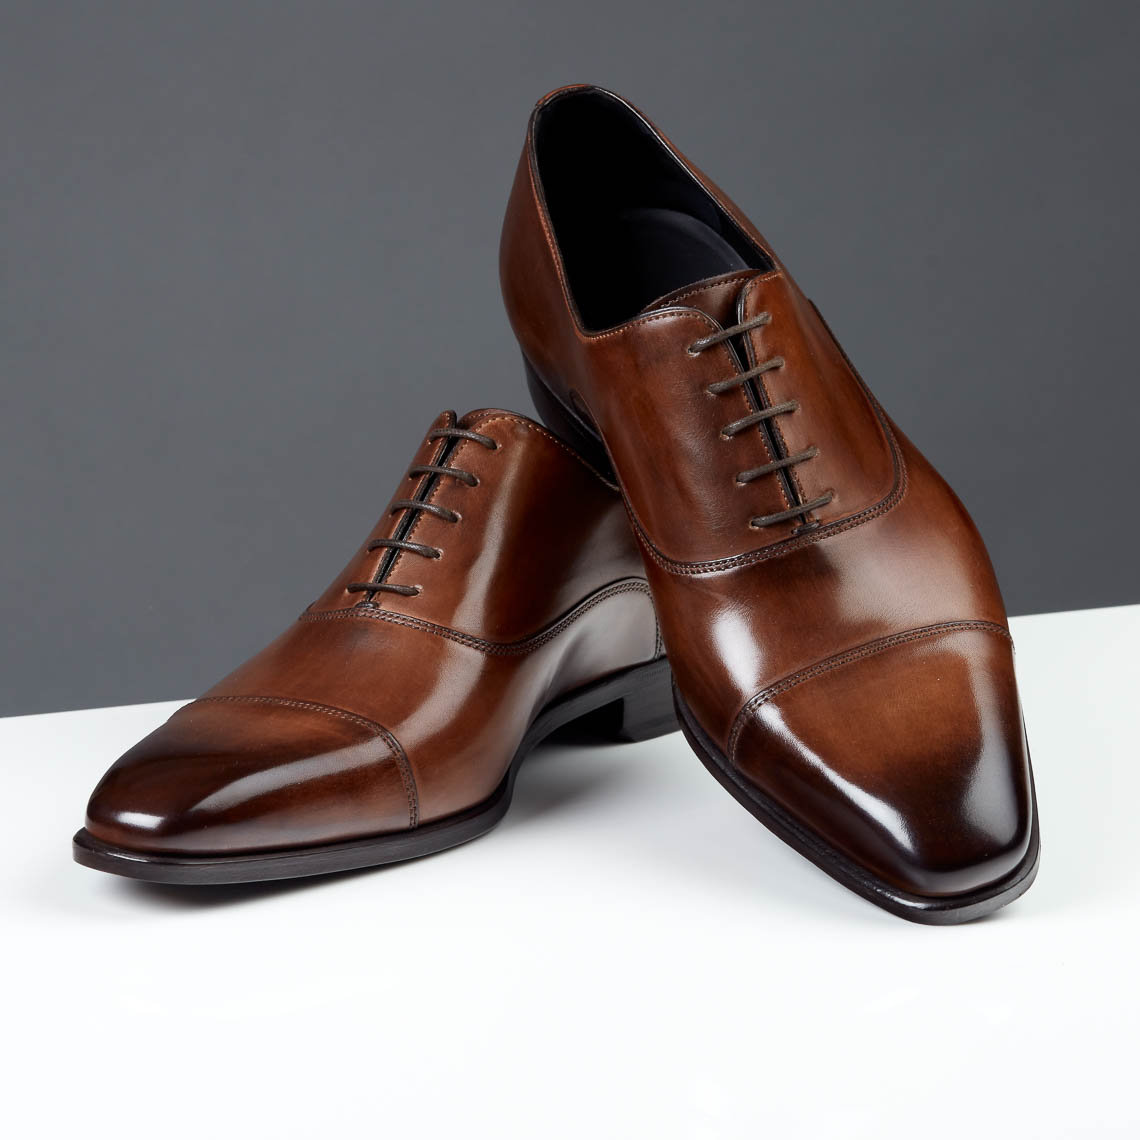 Mens dress shoes on grey background for Paul Evans Shoes in NYC